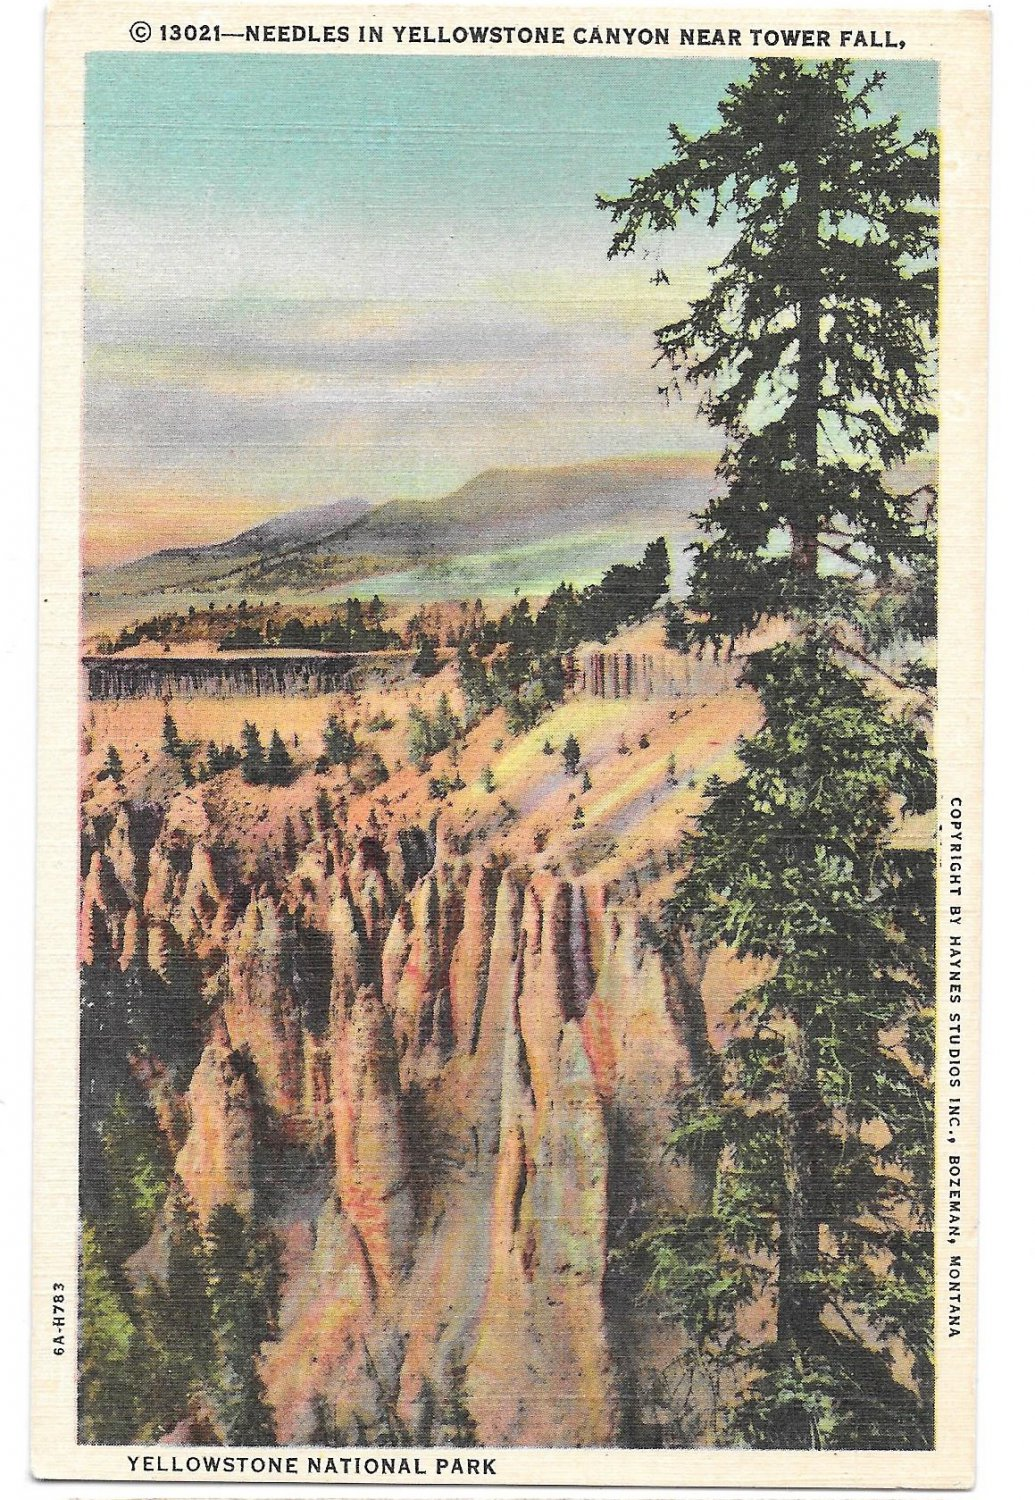 WY Yellowstone Park Needles Yellowstone Canyon Vtg Haynes Linen Postcard Wyoming